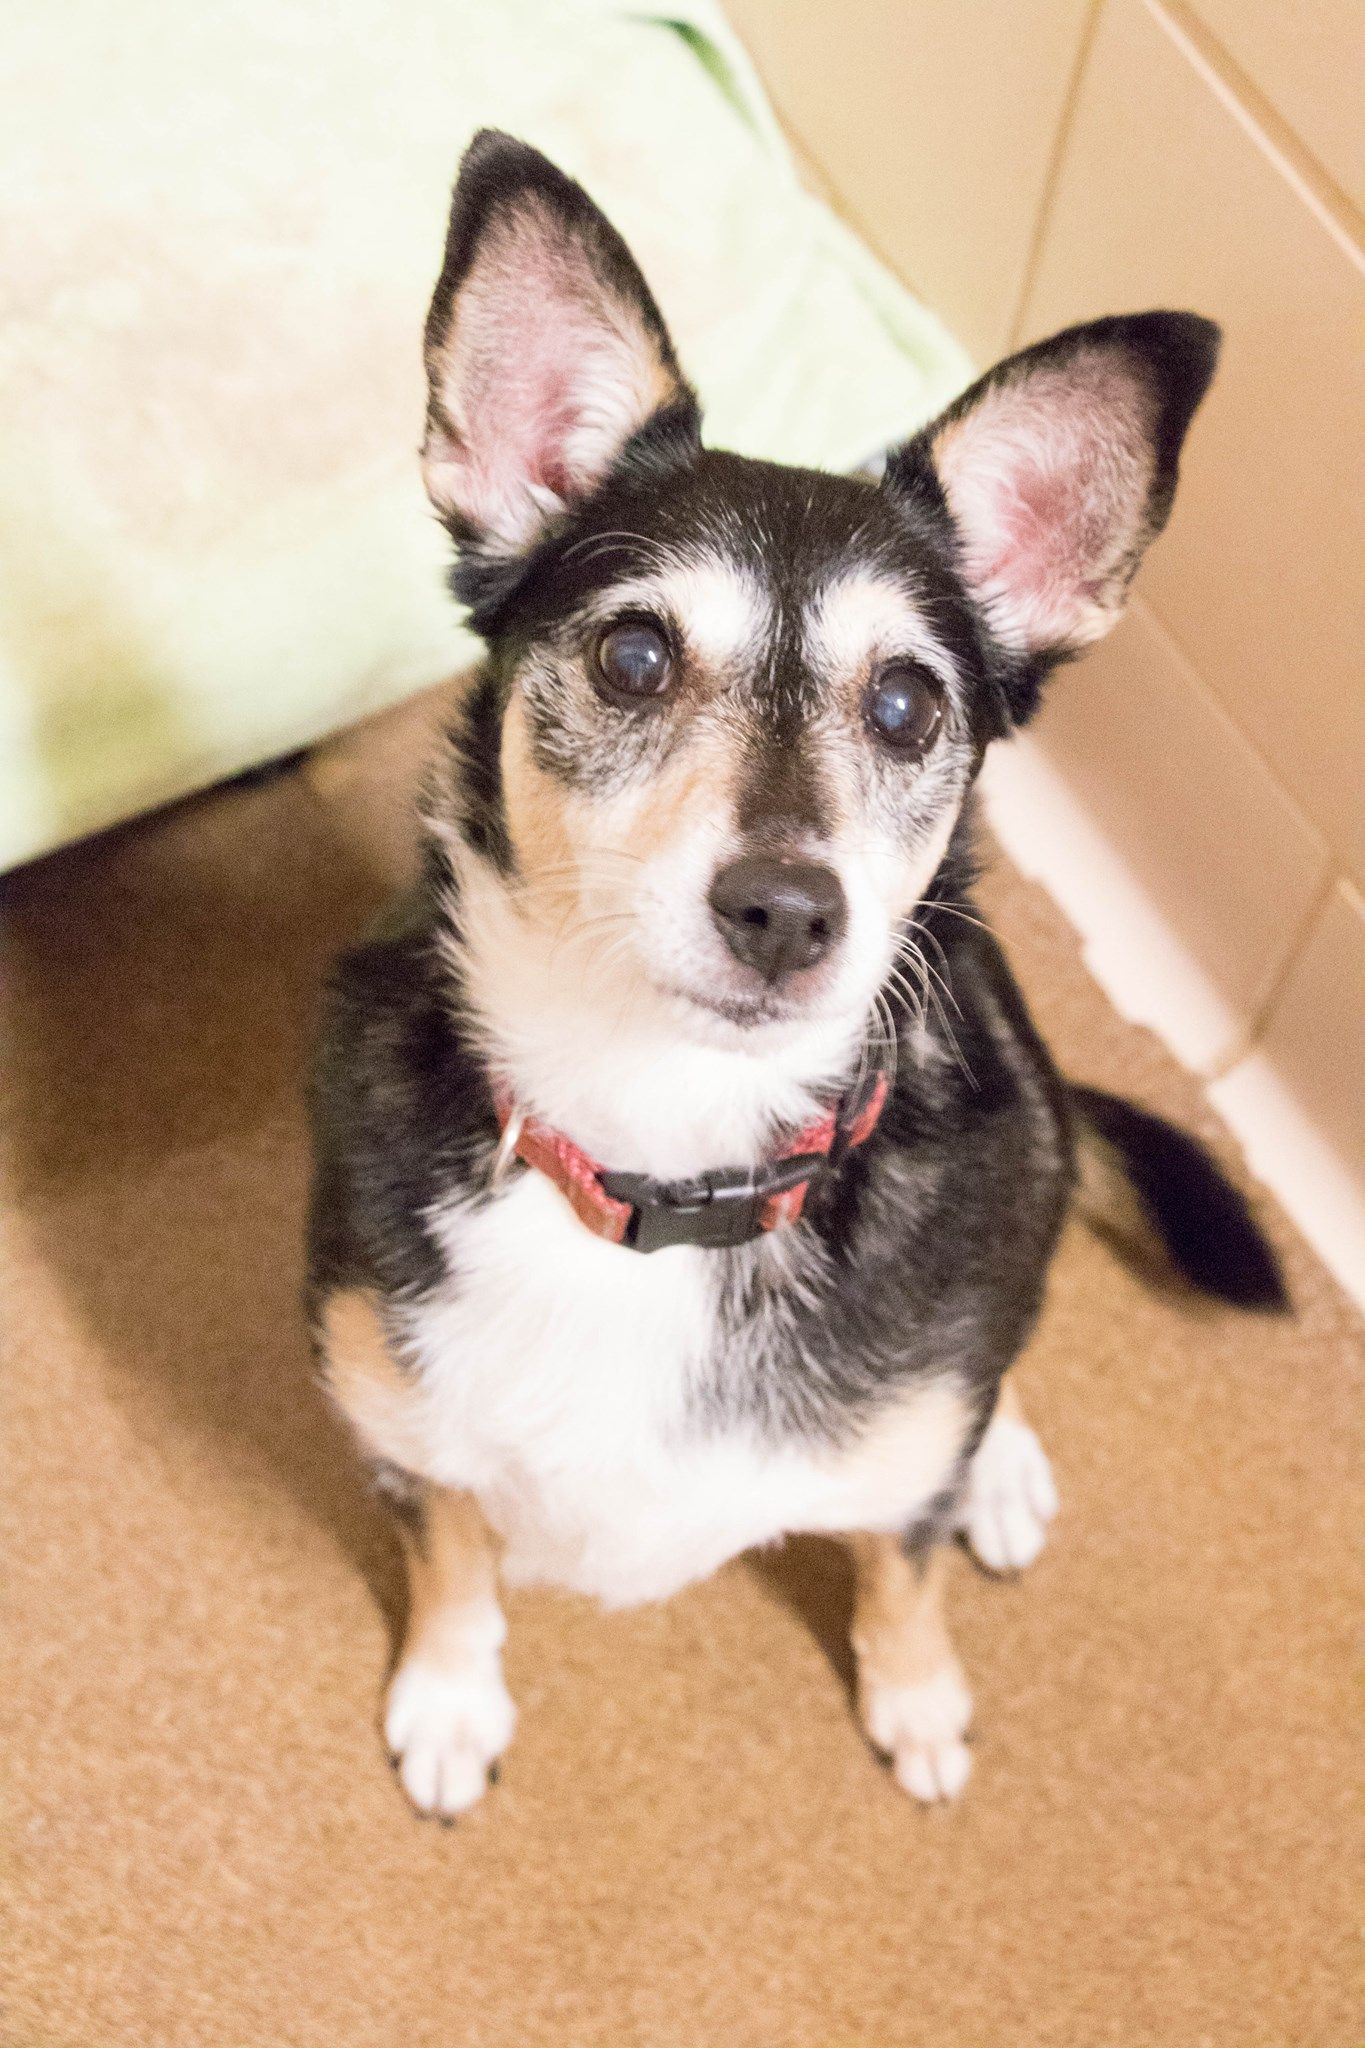 Chihuahua dog for Adoption in St. Cloud, MN. ADN639025 on